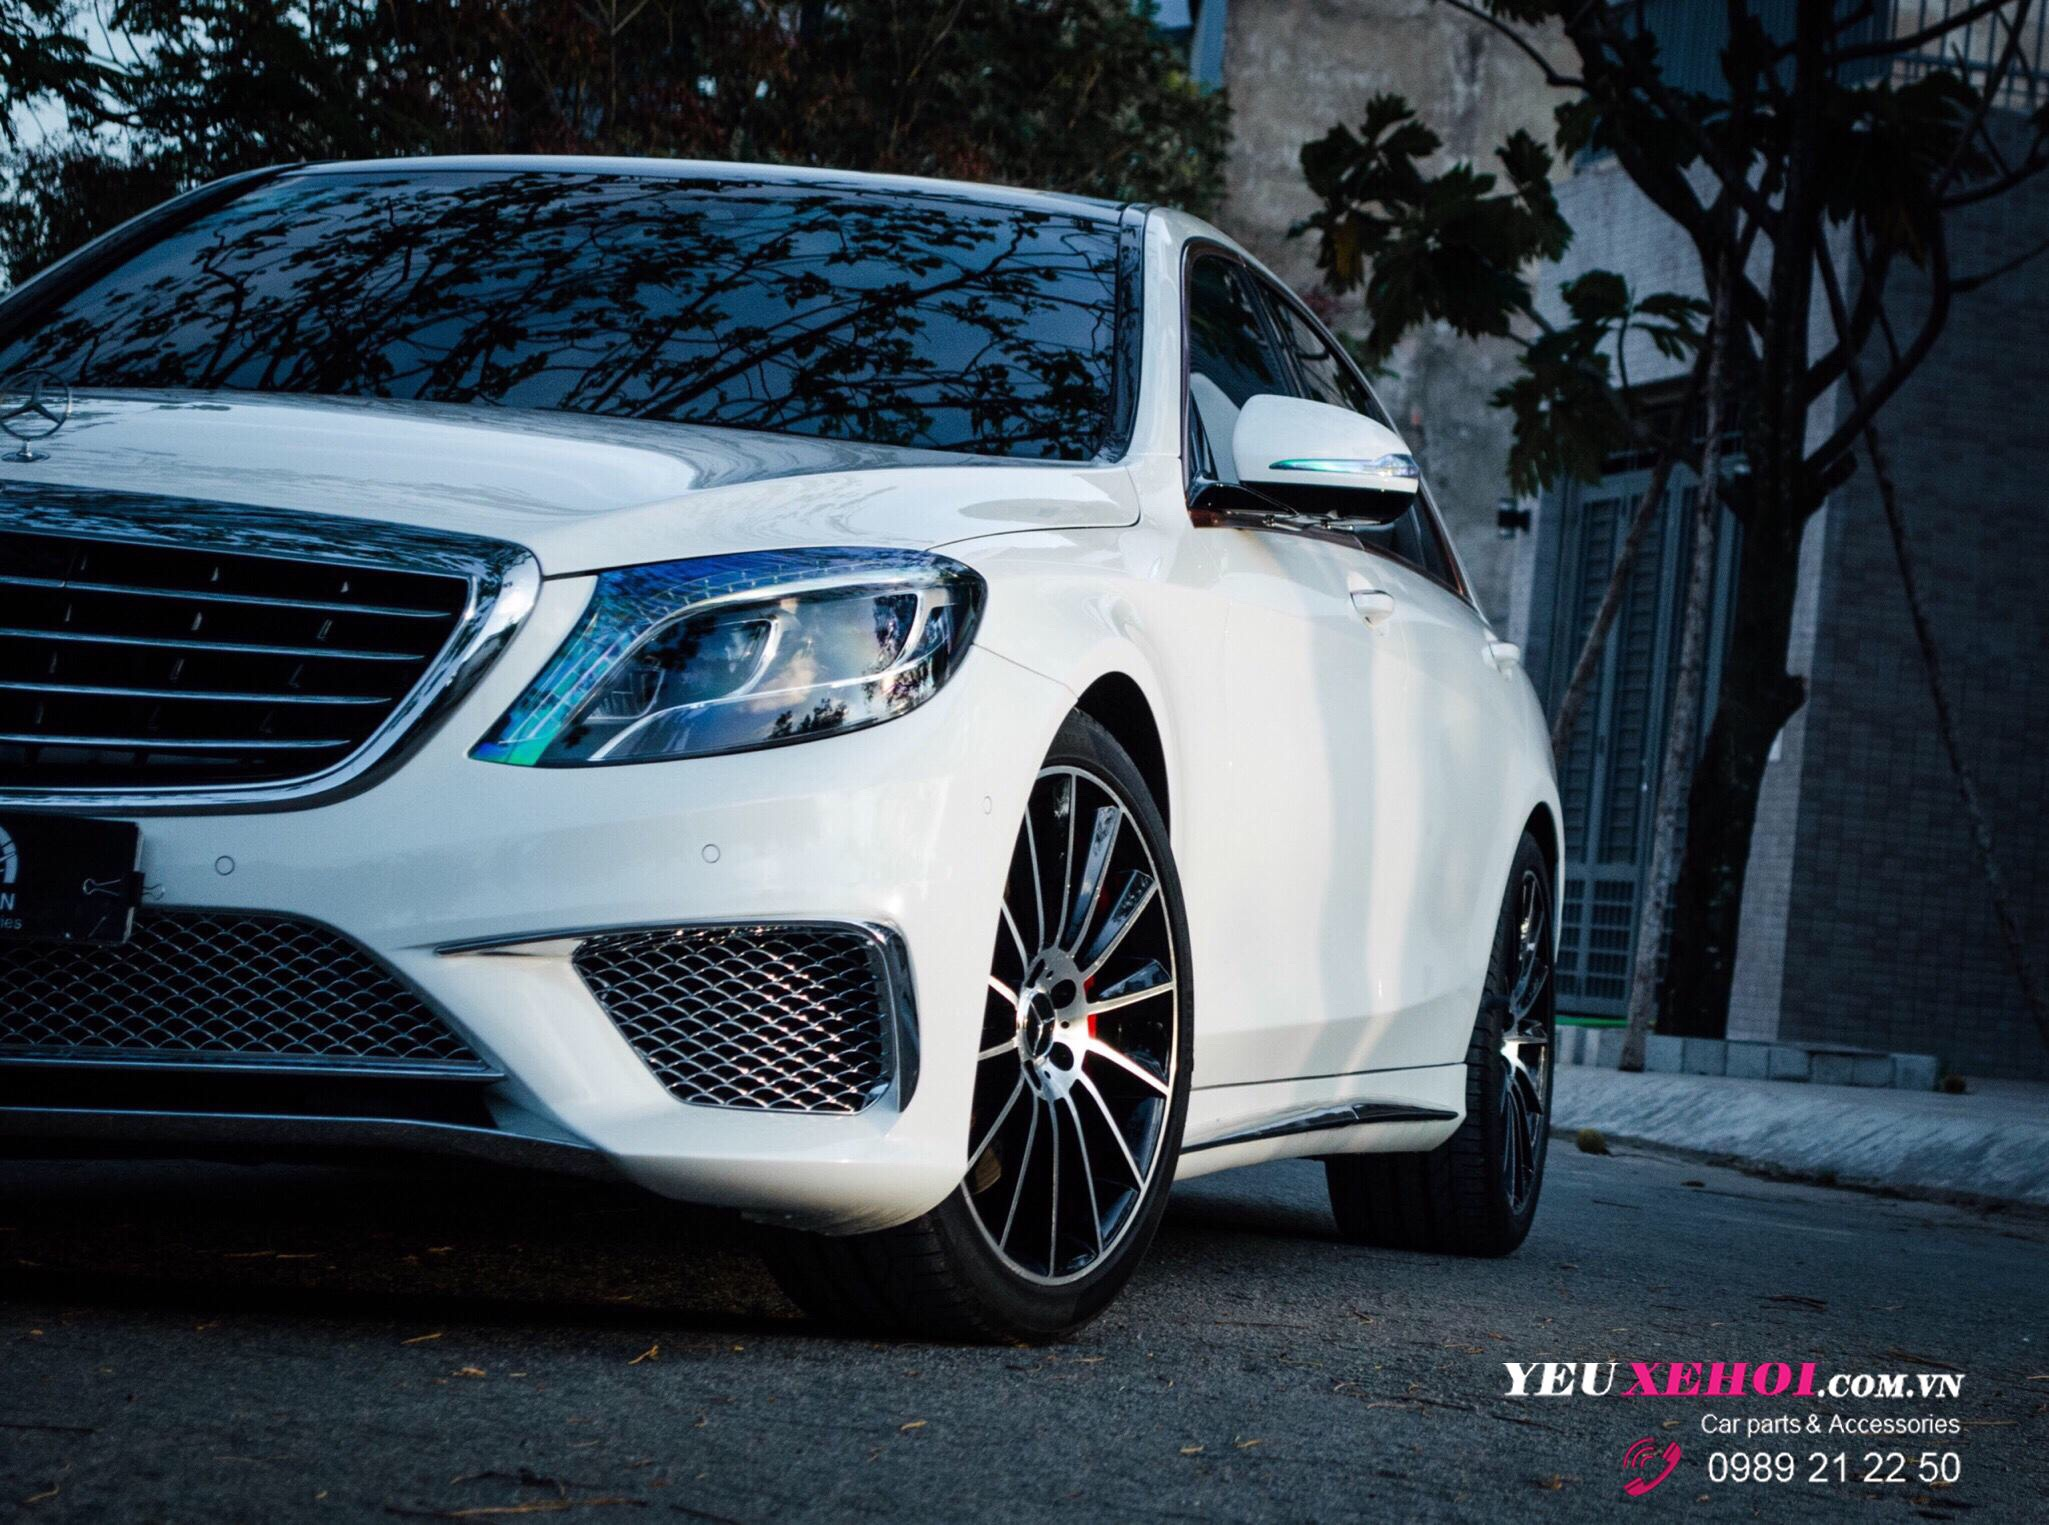 MERCEDES S400 UPGRADE BODY S65 AMG / PÔ RES / MÂM 20 INCHES